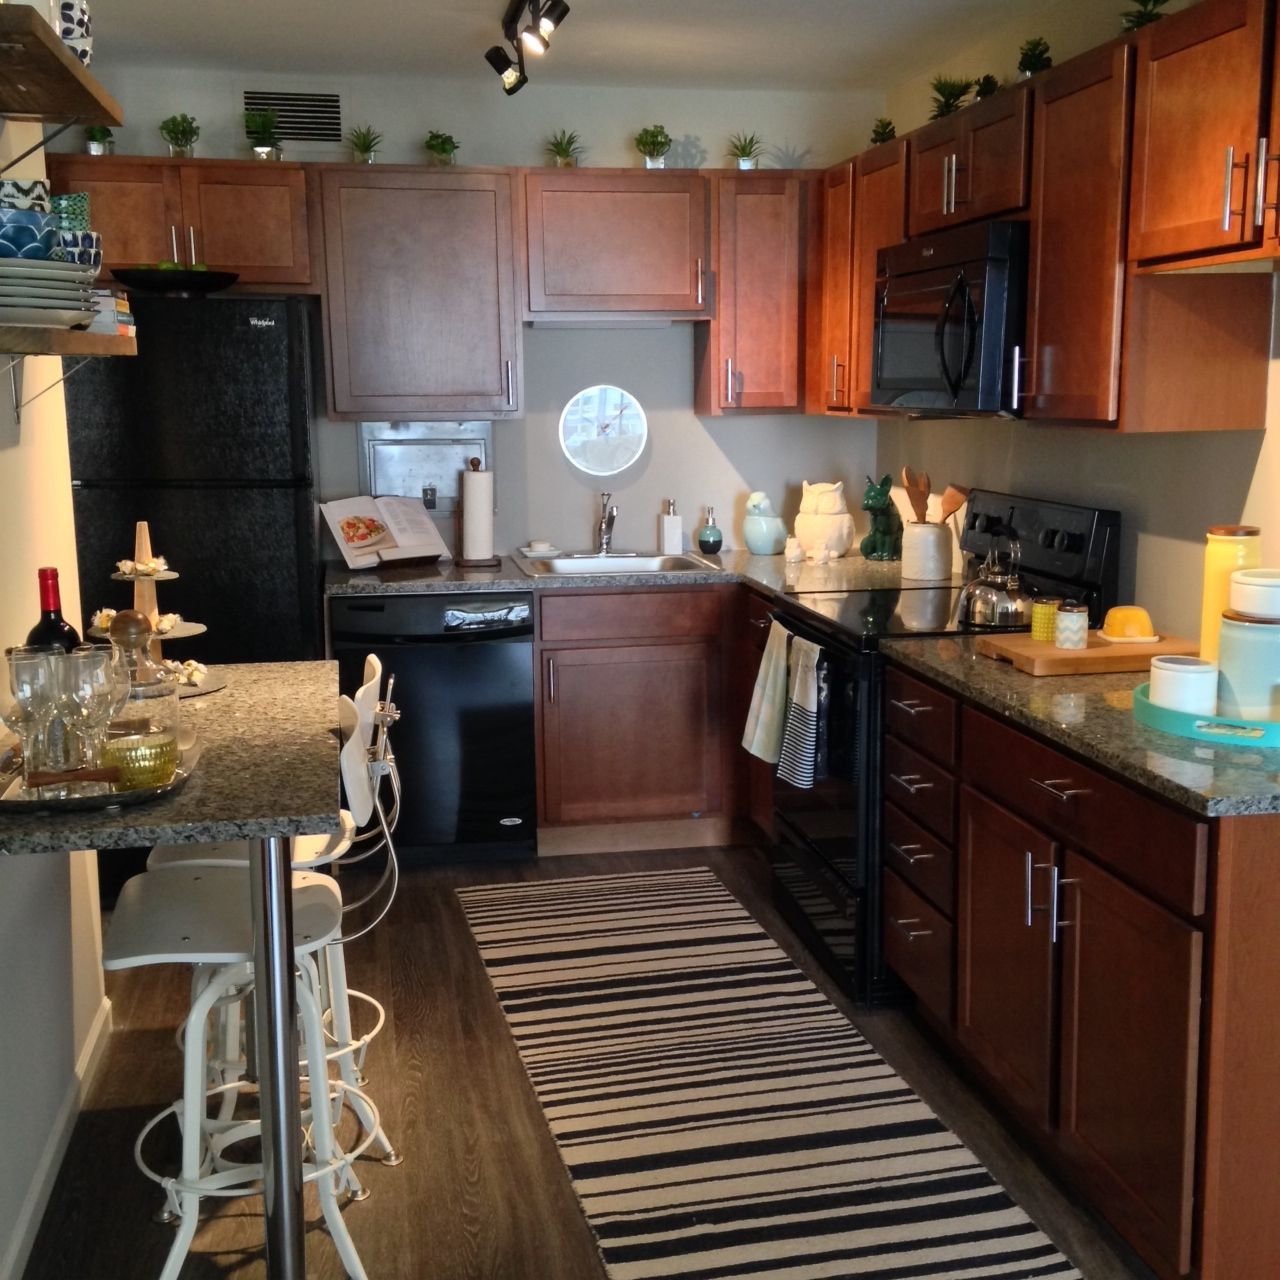 Apartments For Rent In Downtown Chicago With Modern Kitchens. Gold Coast  City Apartments Is A Luxury Apartment Community In The Gold Coast  Neighborhood Of ...